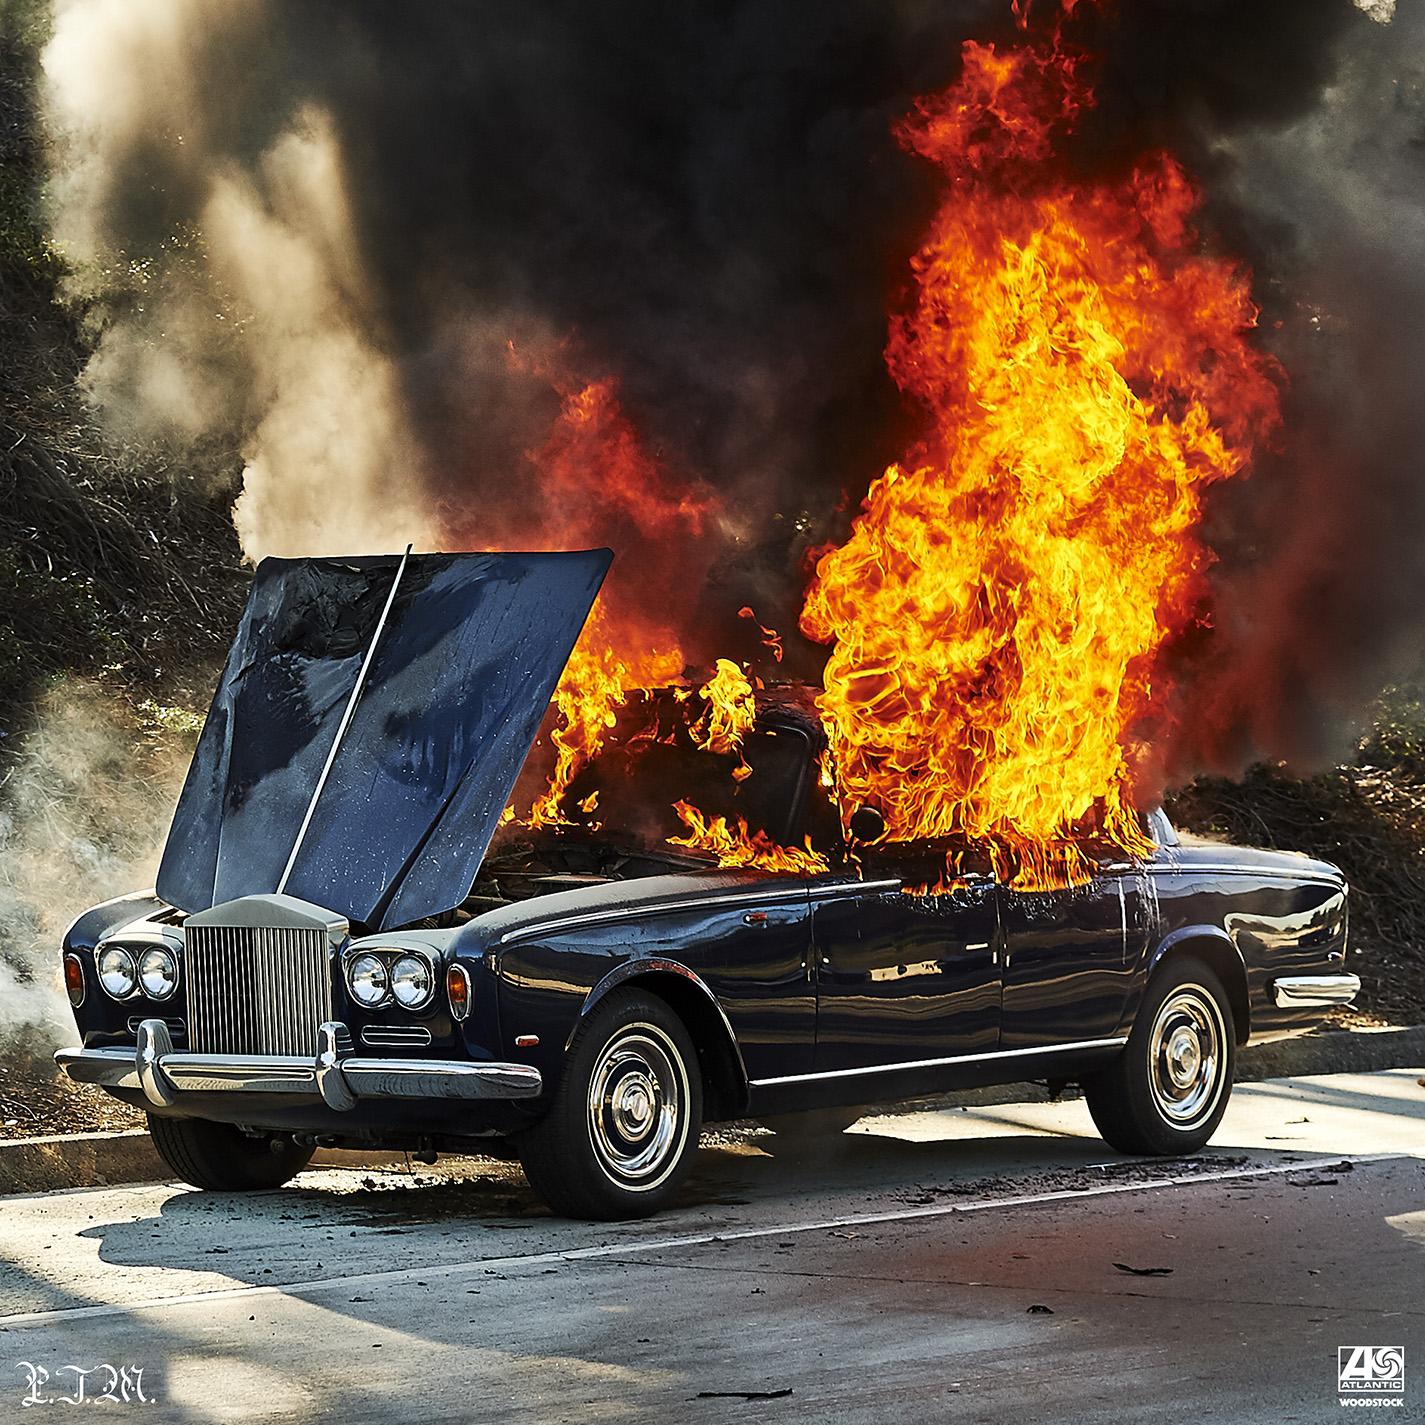 ptm woodstock Portugal. The Man release new album Woodstock: Stream/download